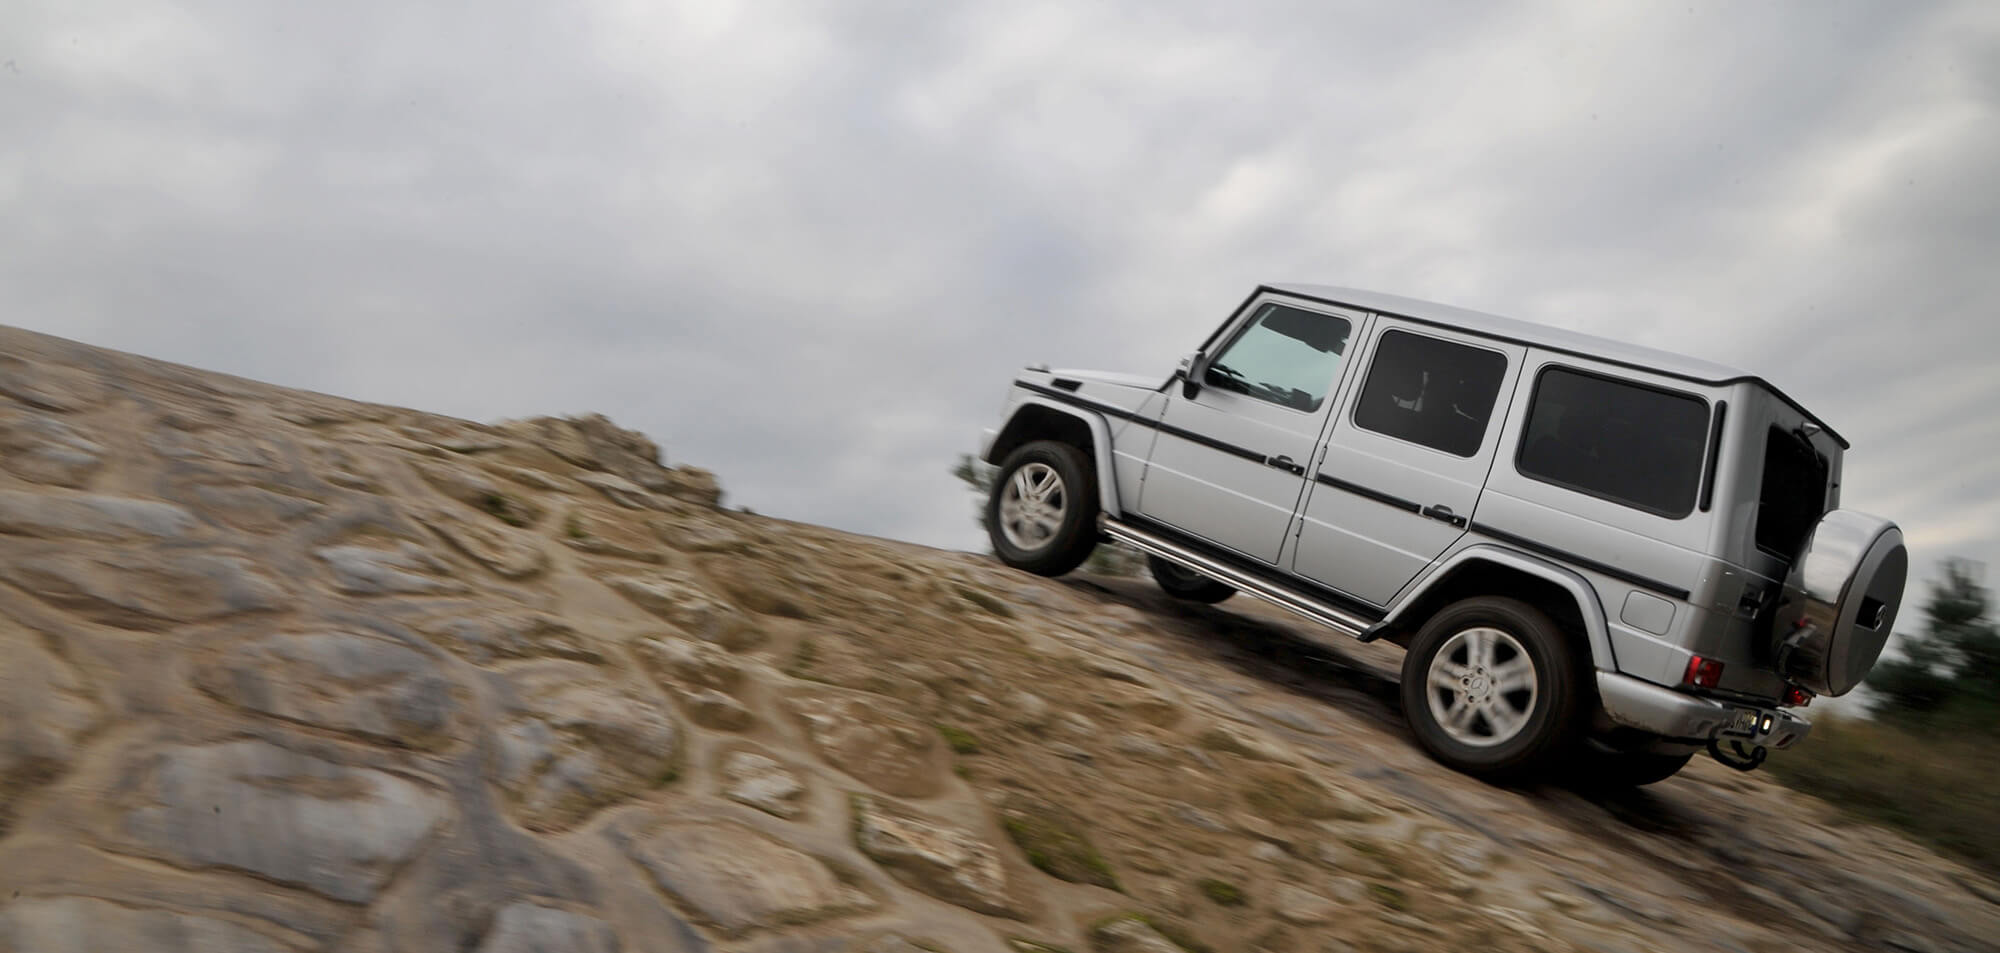 Mercedes G350 AMG G Wagon luxury hard core off road car on a steep slope - Exotic SUV